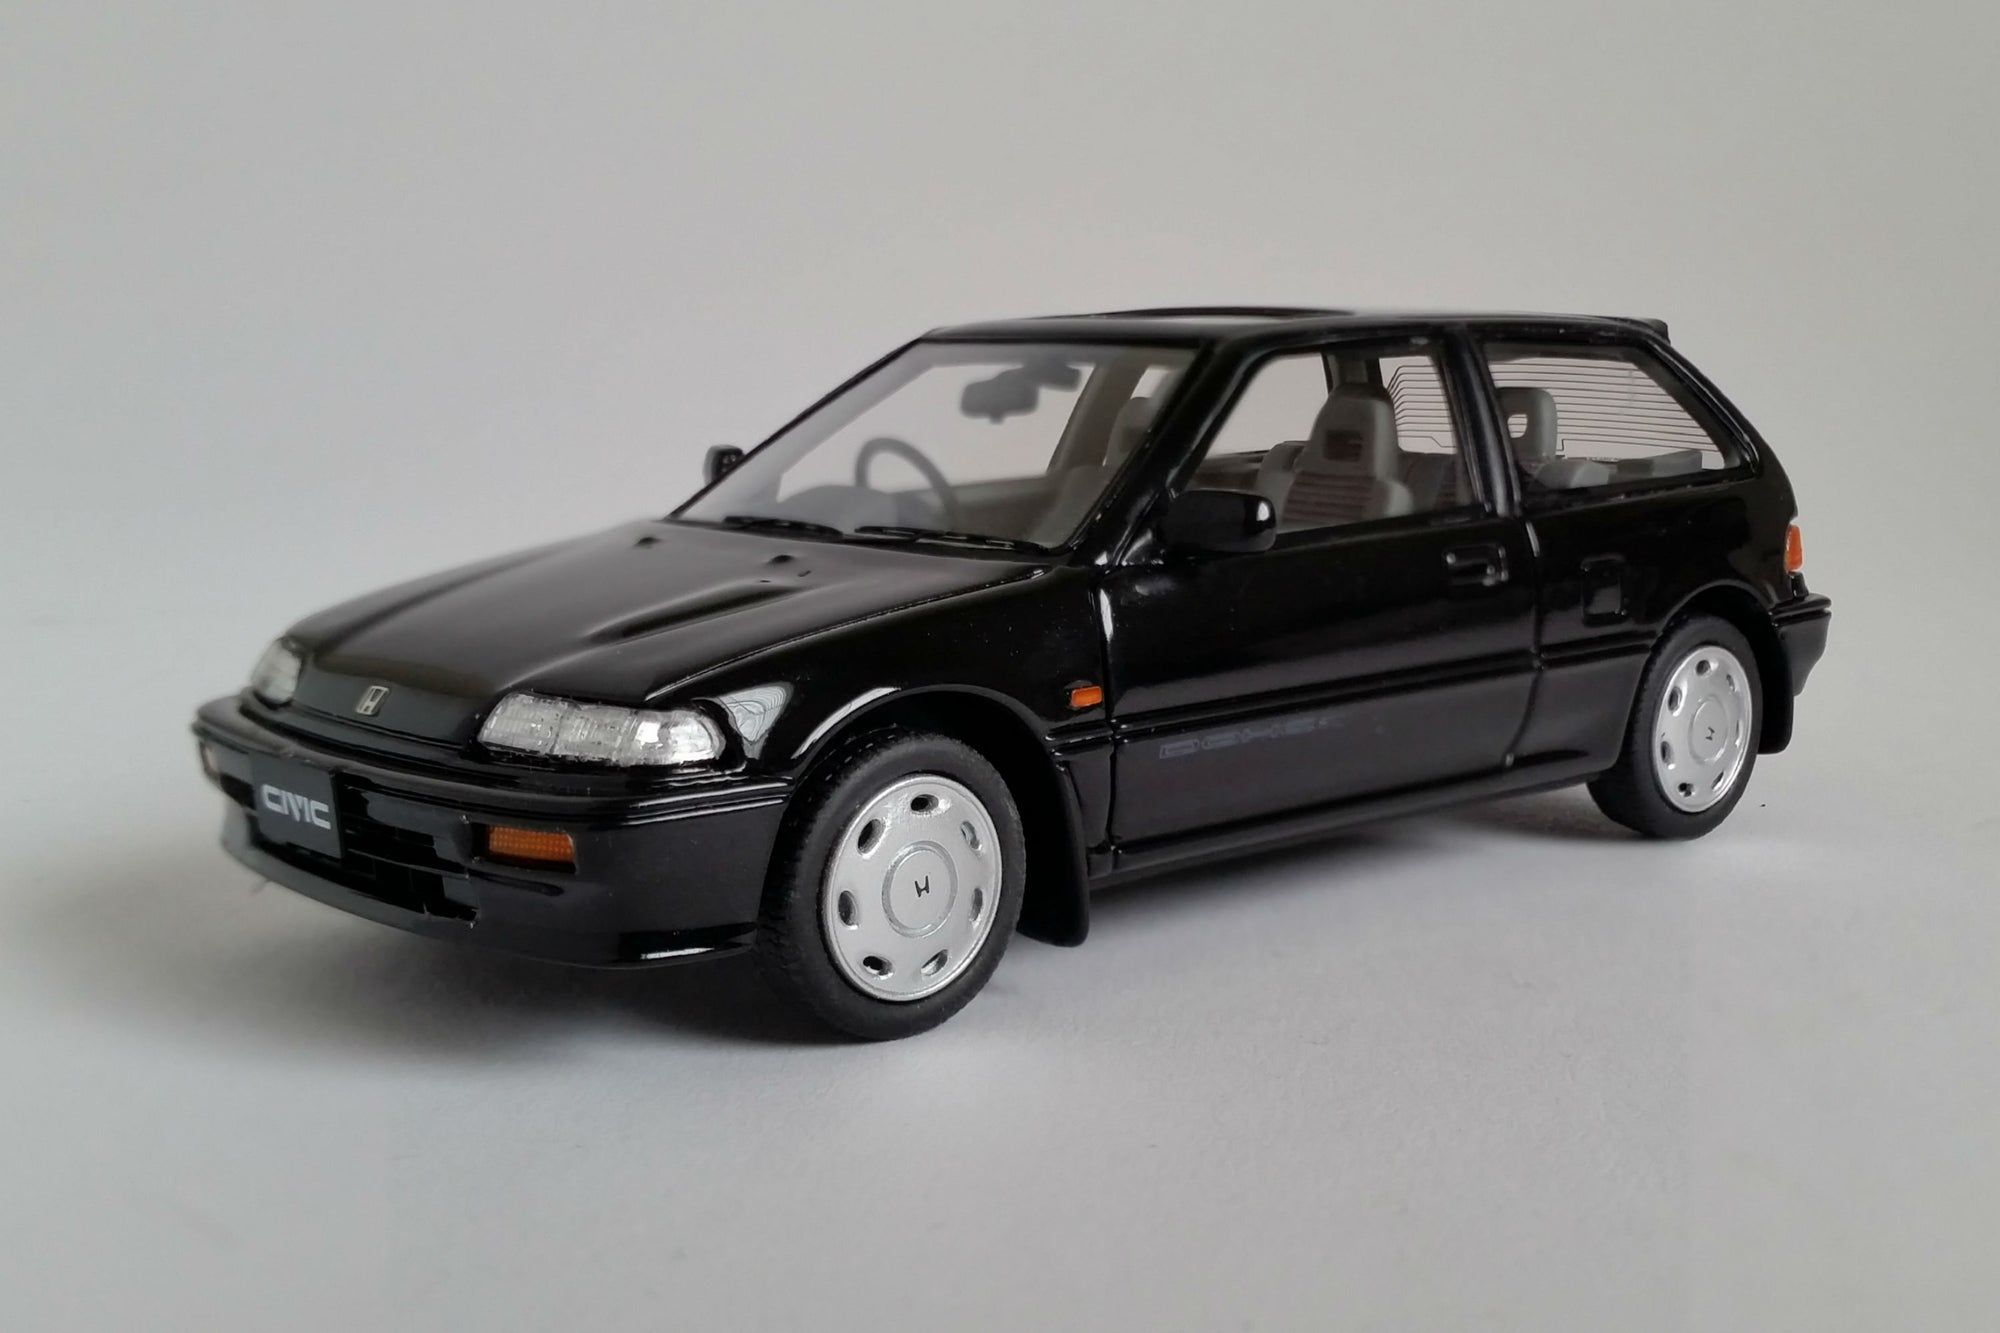 Honda Civic Si Ef3 143 Scale Model Car Mark 43 Model